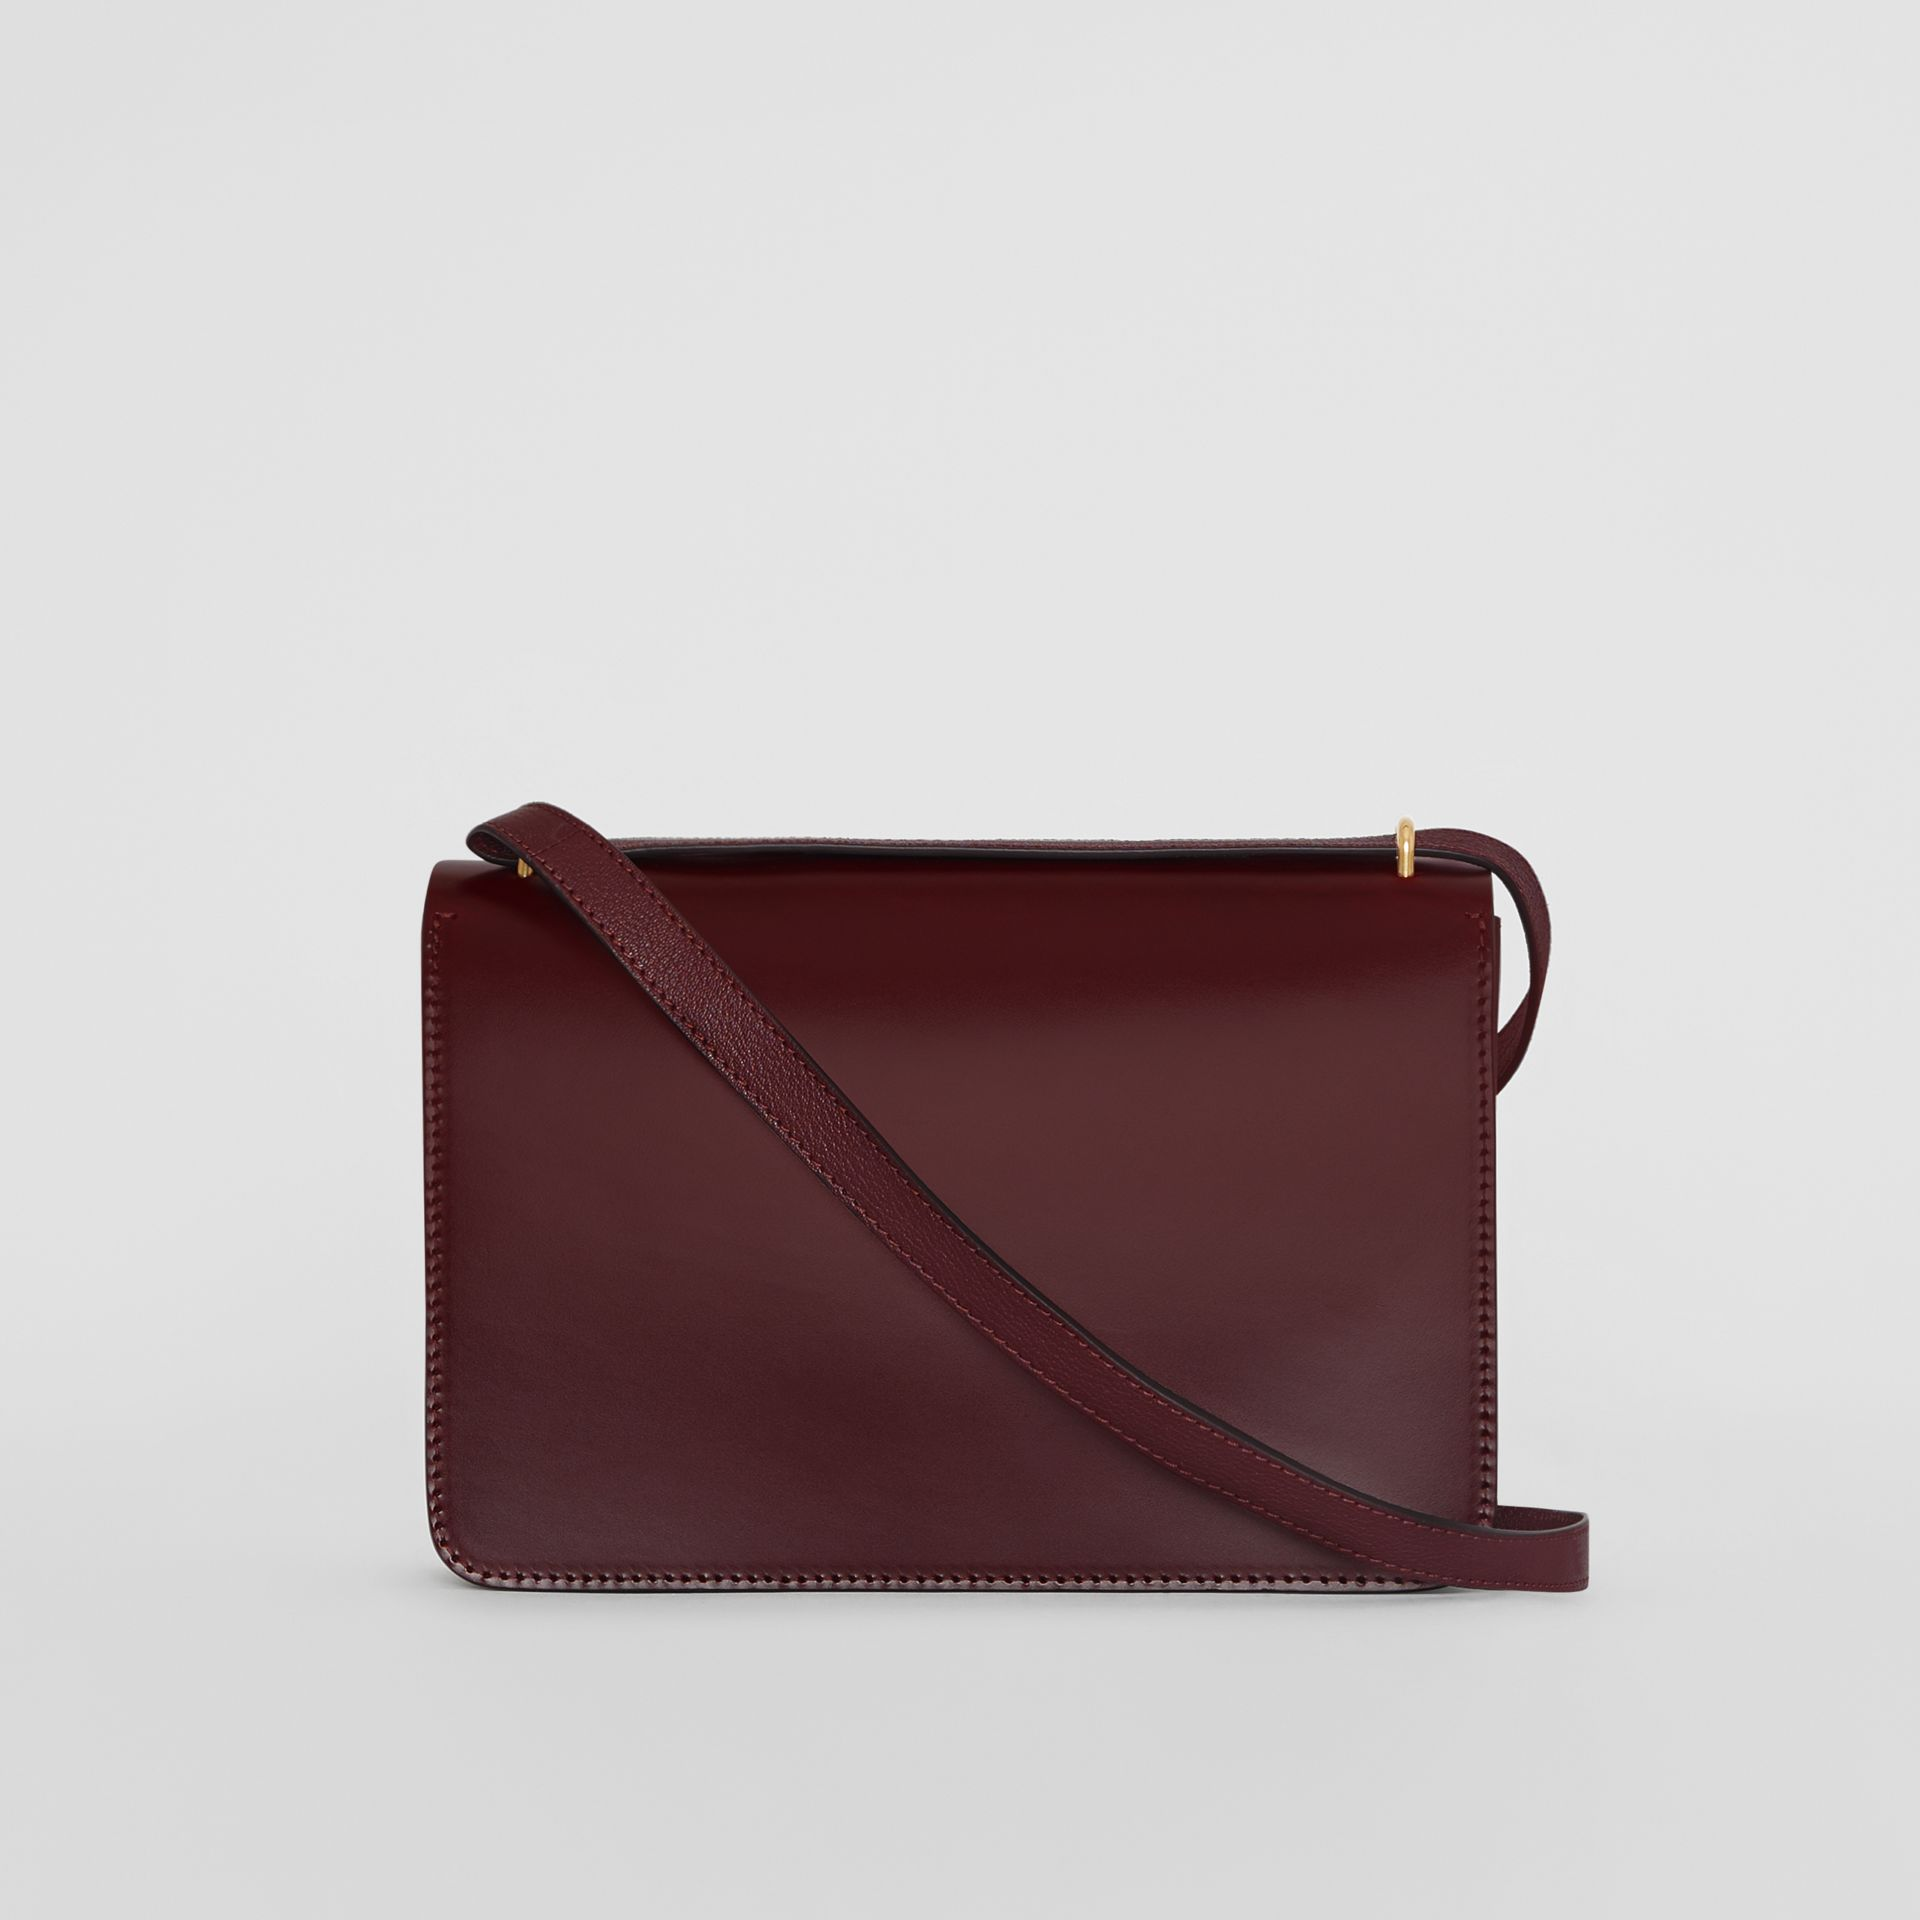 Borsa The D-ring media in pelle (Rosso Violetto Intenso) - Donna | Burberry - immagine della galleria 7